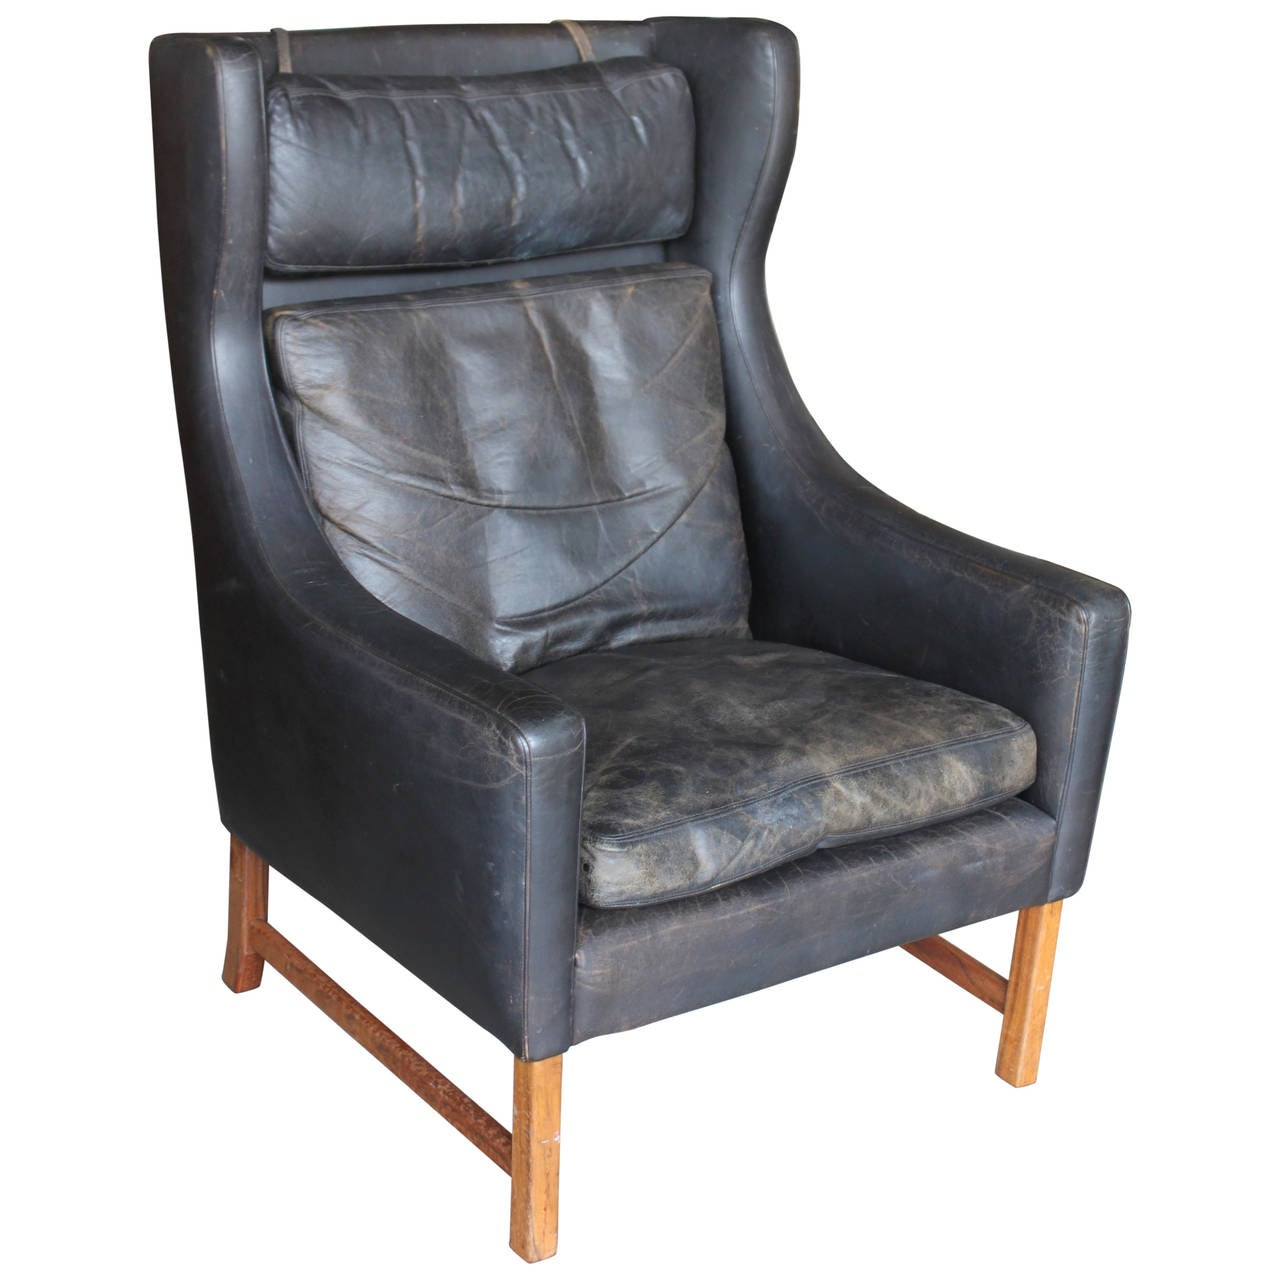 Vintage Norwegian Leather Wingback Chair 1 - Vintage Norwegian Leather Wingback Chair At 1stdibs